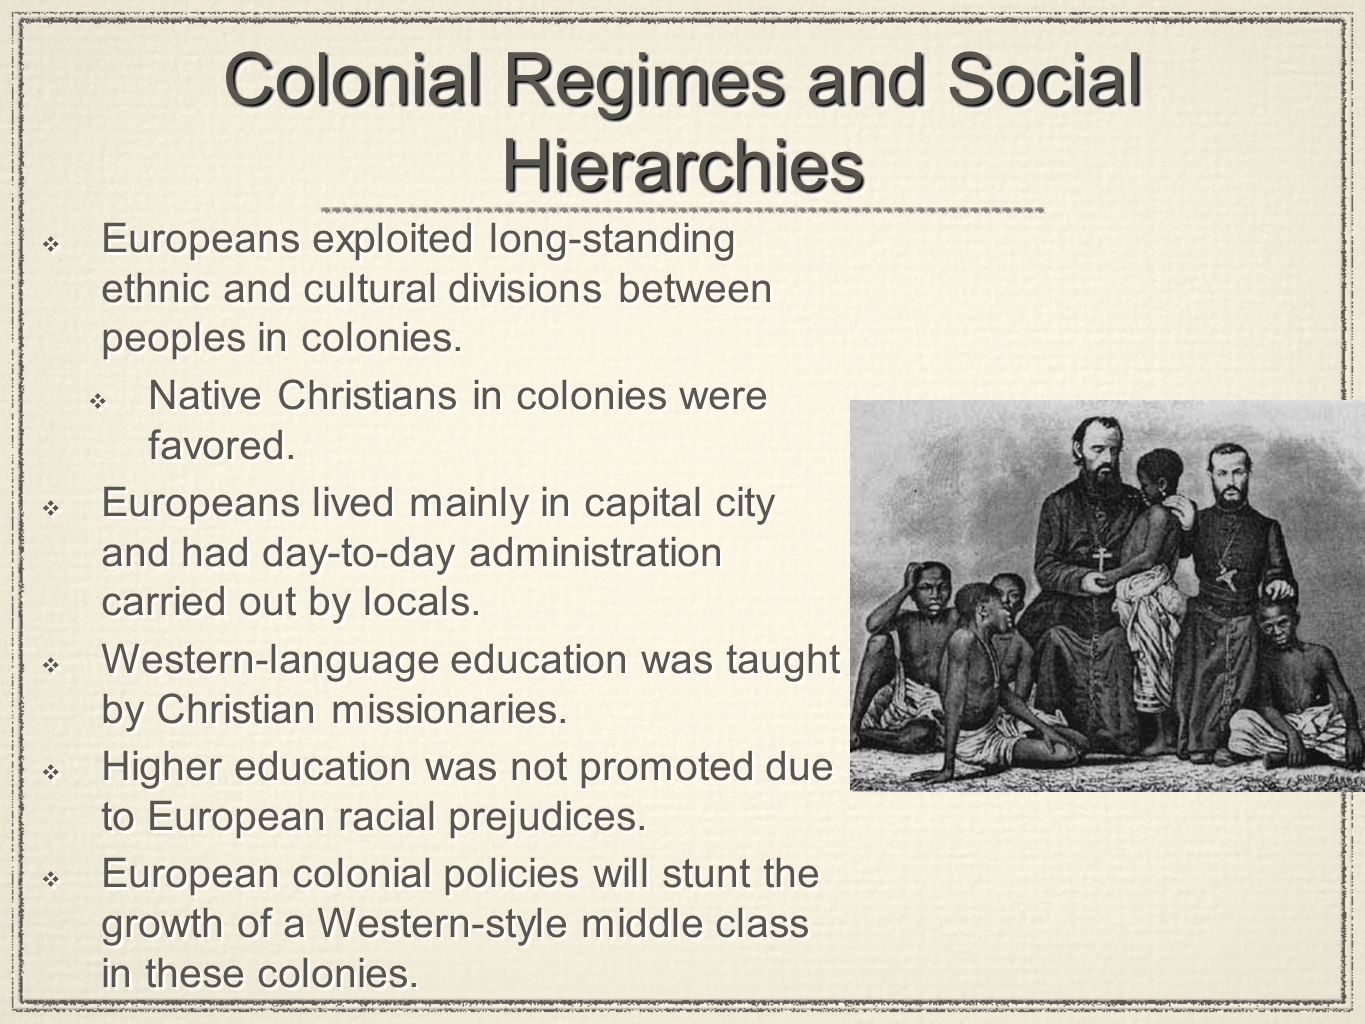 Colonial Regimes and Social Hierarchies